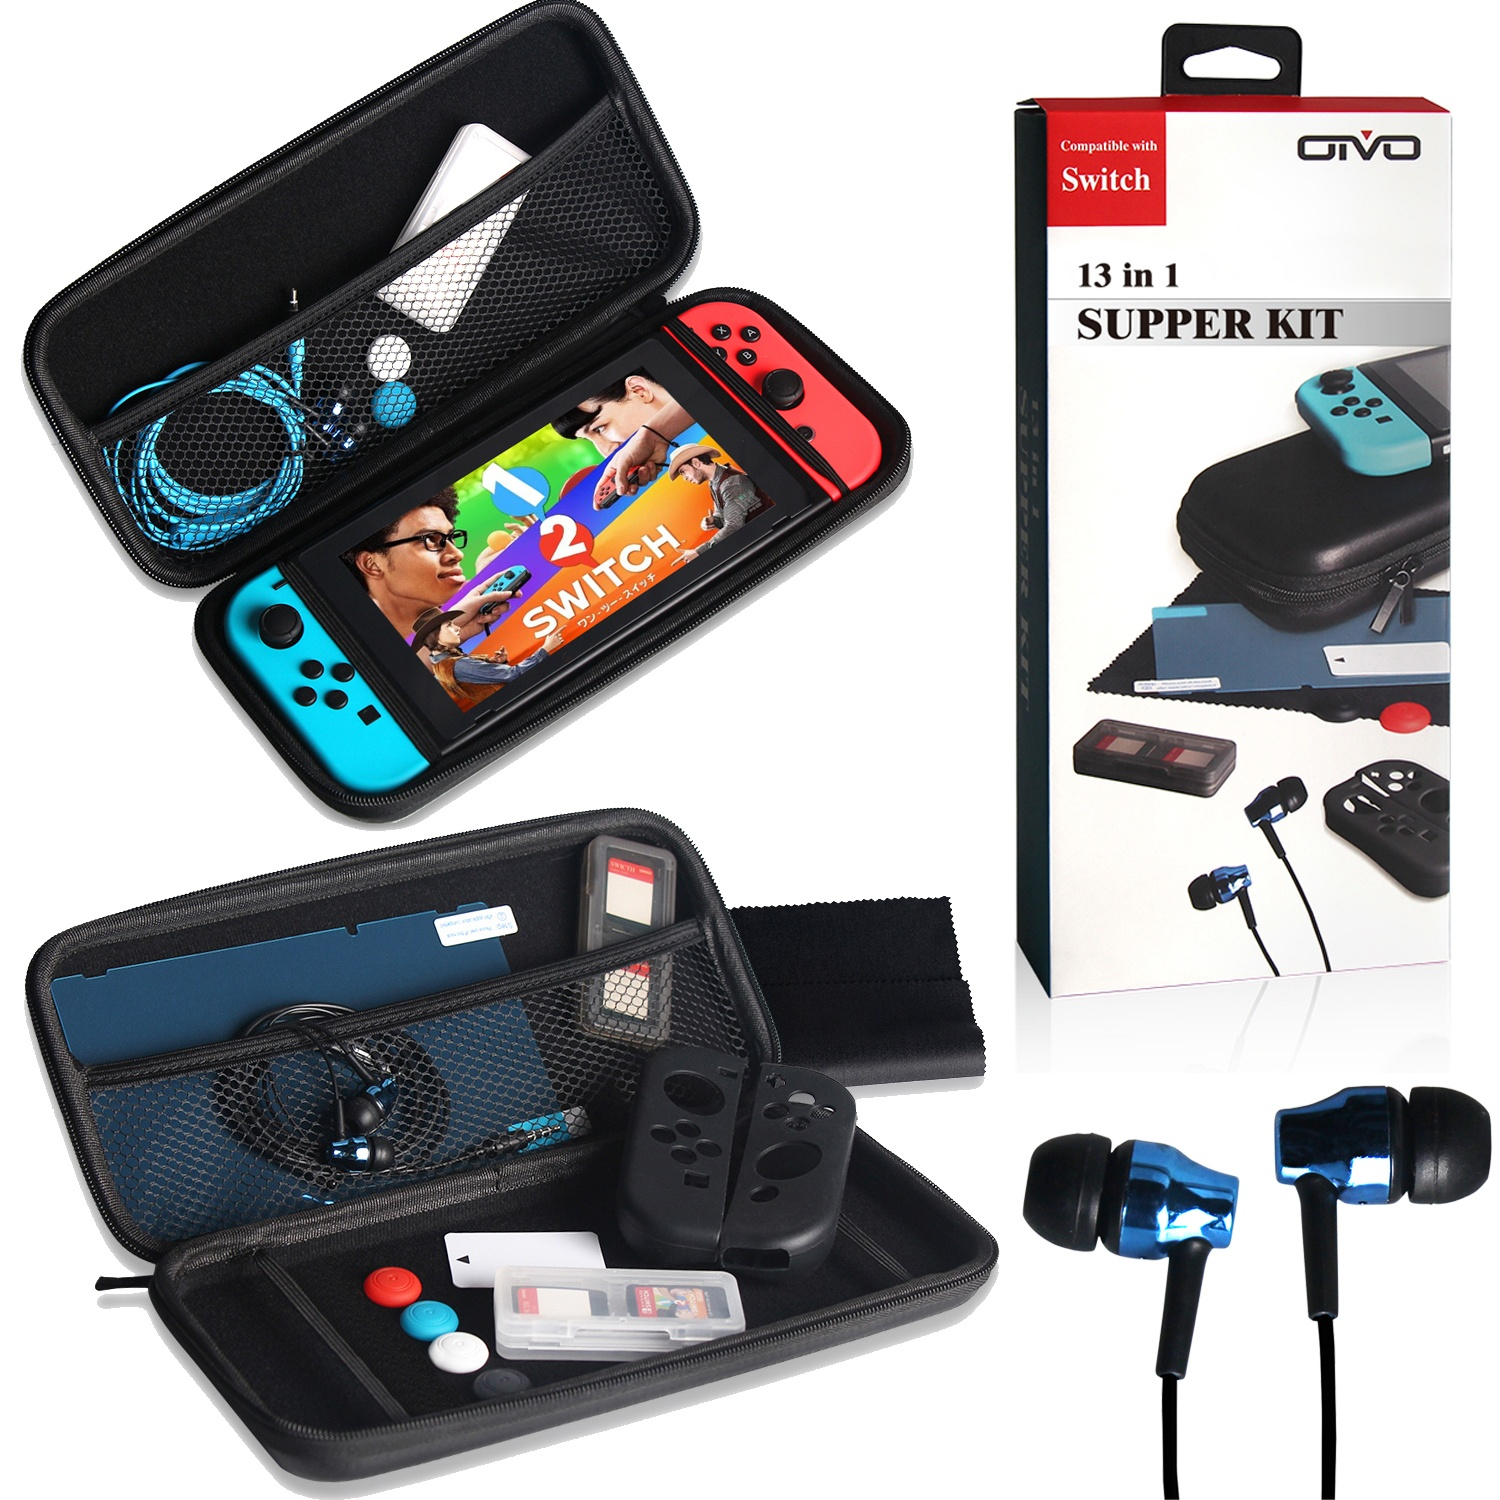 Jetstar Nintendo Switch Portable Travel Carrying Protector Case 13 Screen Official Items Inside Earphone Cartridge Box By Shop Online For